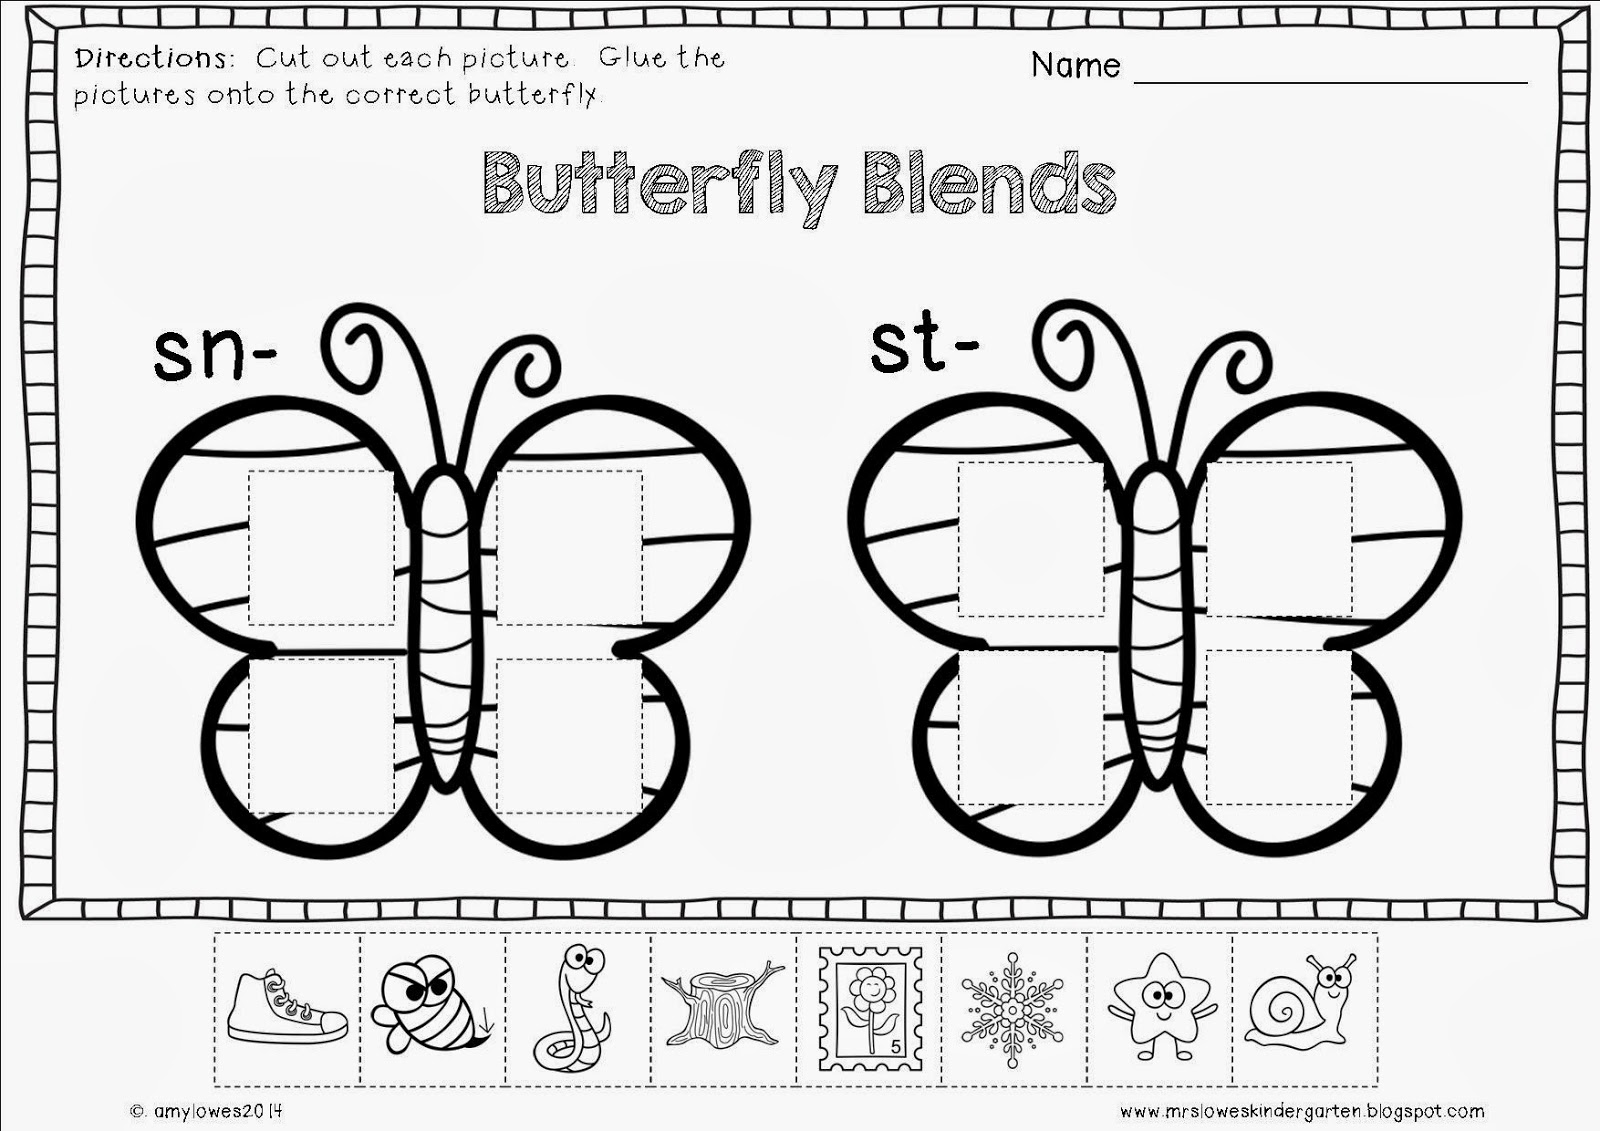 Butterfly math worksheets 1462242 - metabo01.info